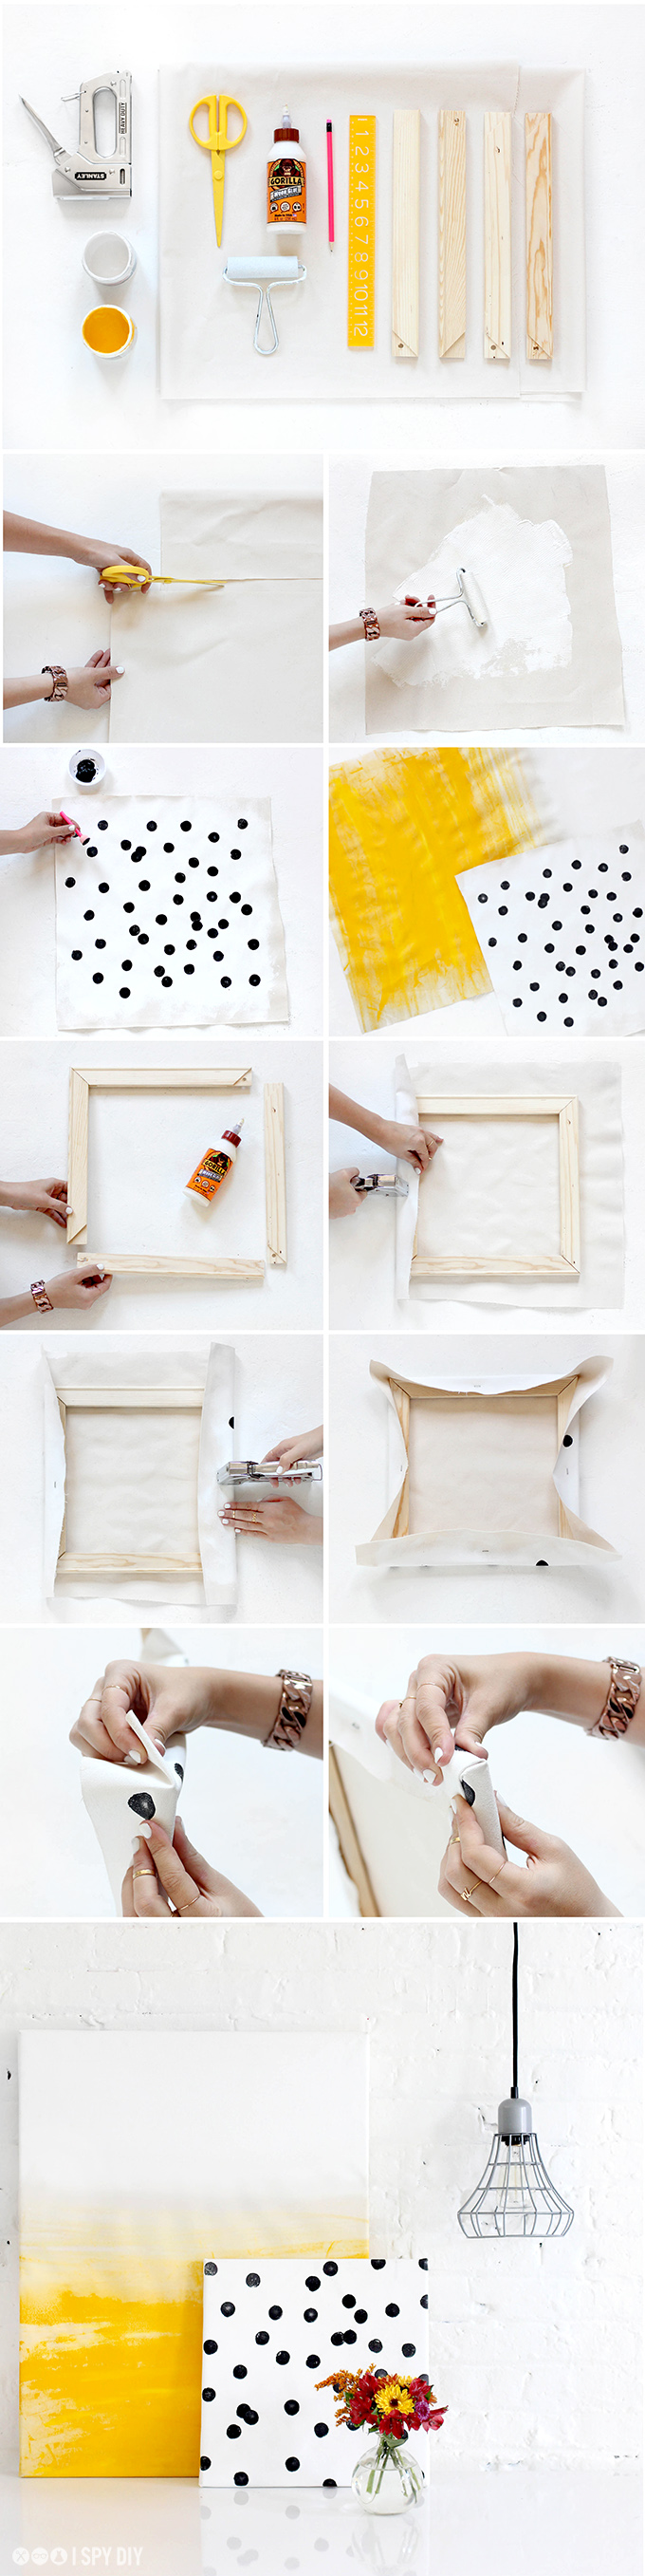 Ispydiy_painting_steps